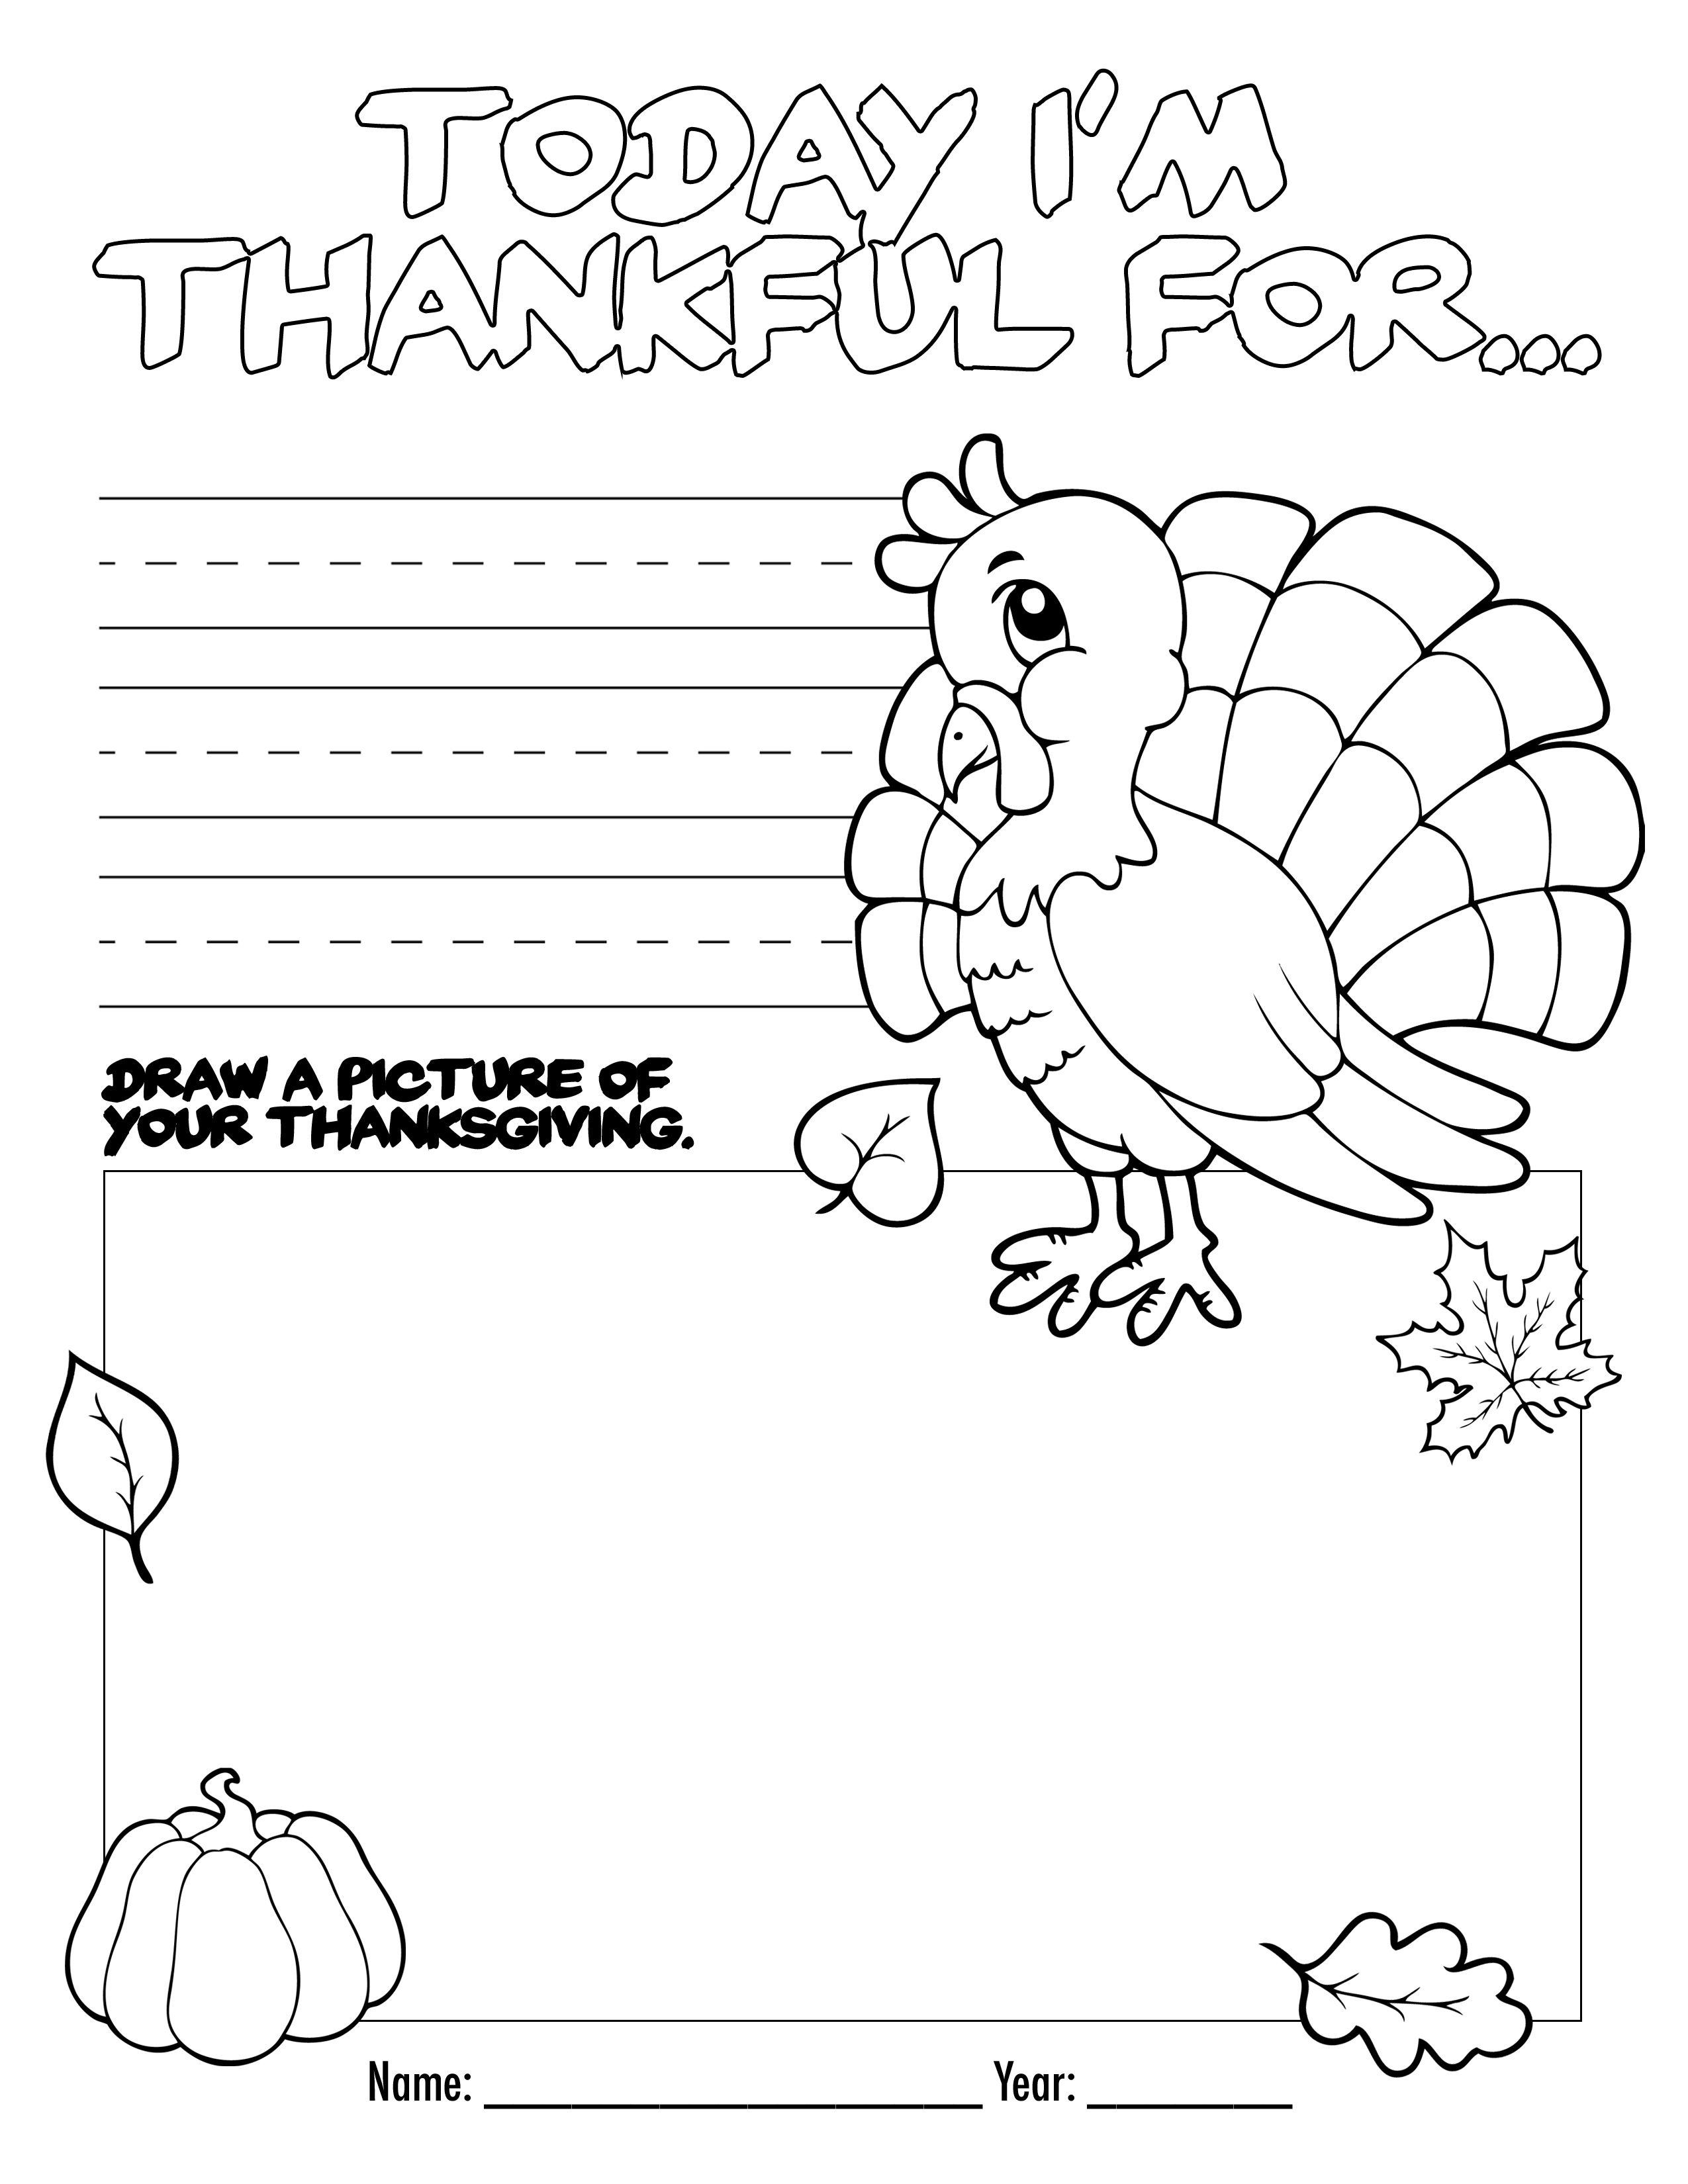 Thanksgiving Coloring Book Free Printable For The Kids! | Bloggers - Thanksgiving Printable Books Free